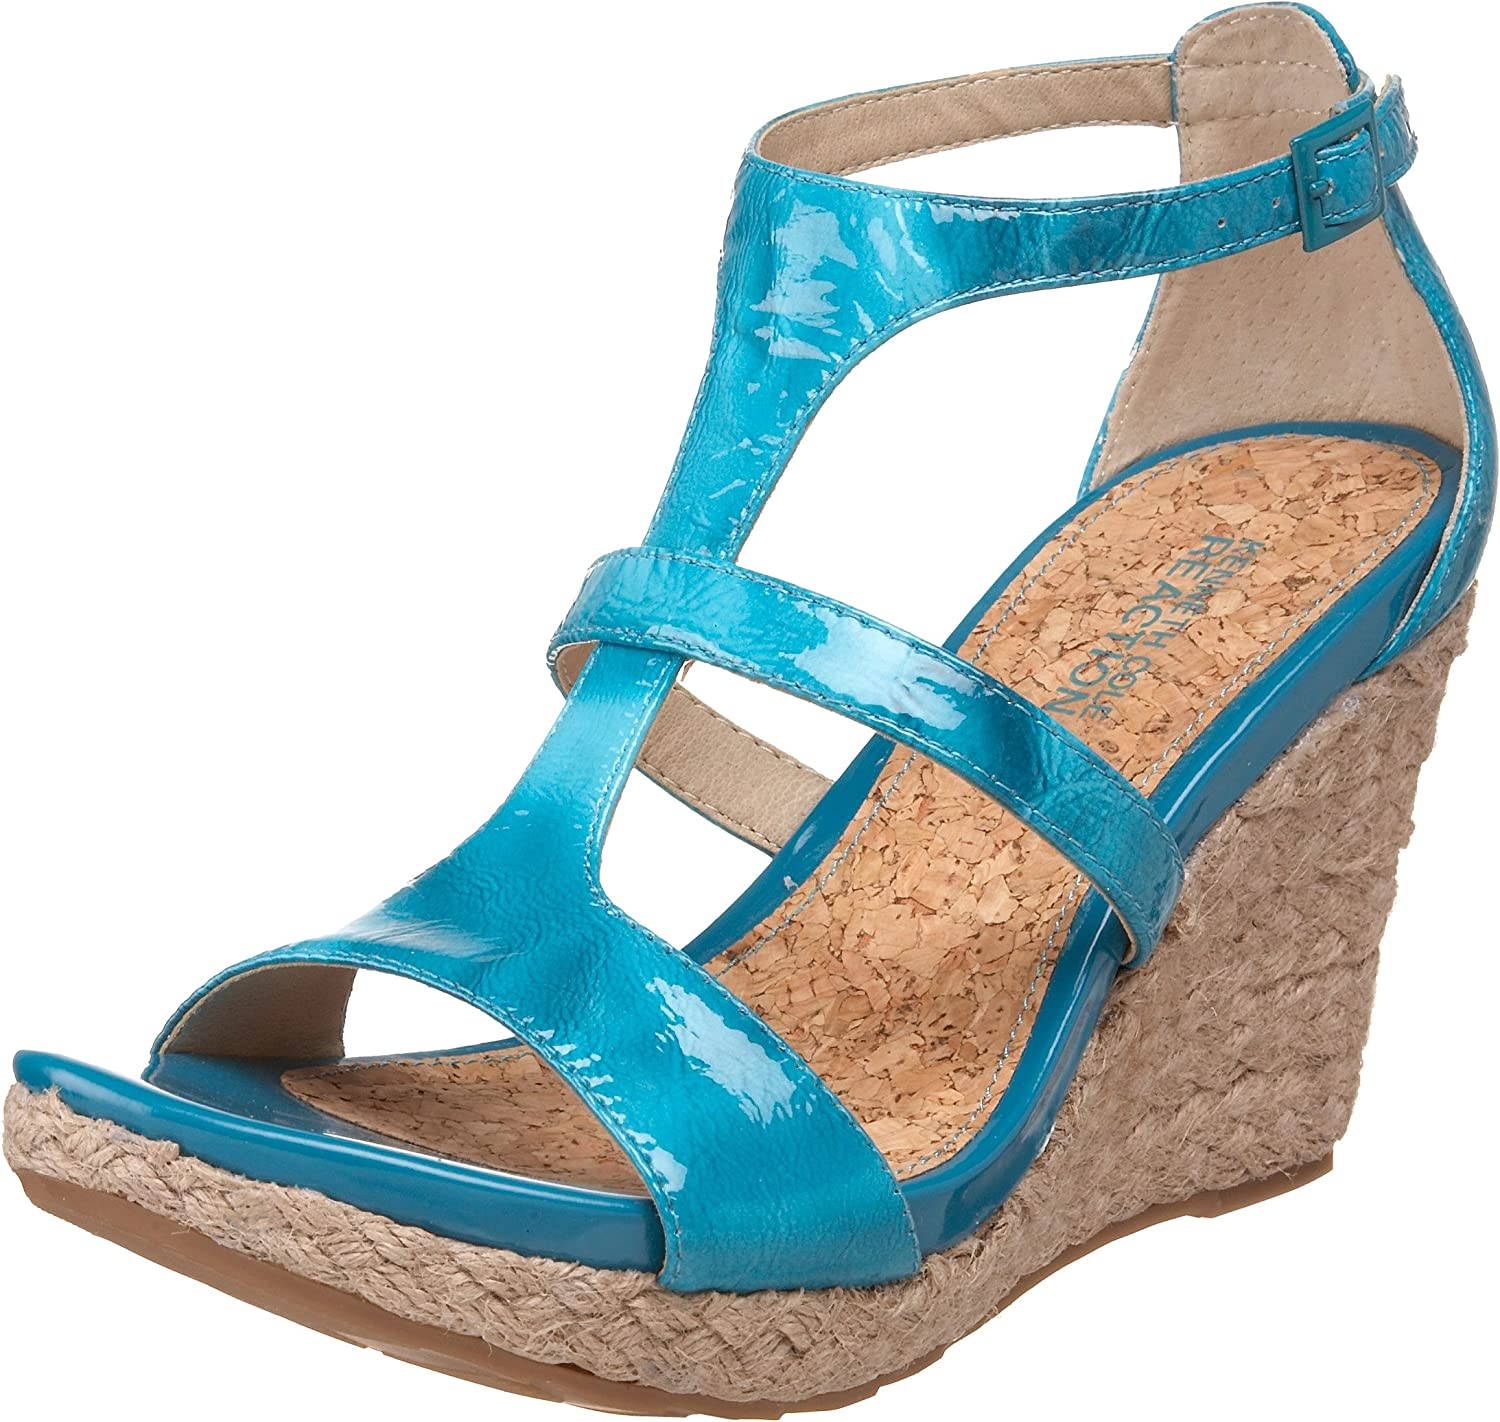 Kenneth Cole REACTION Choice Women's Kiss Or Sandal Dare Wedge Challenge the lowest price